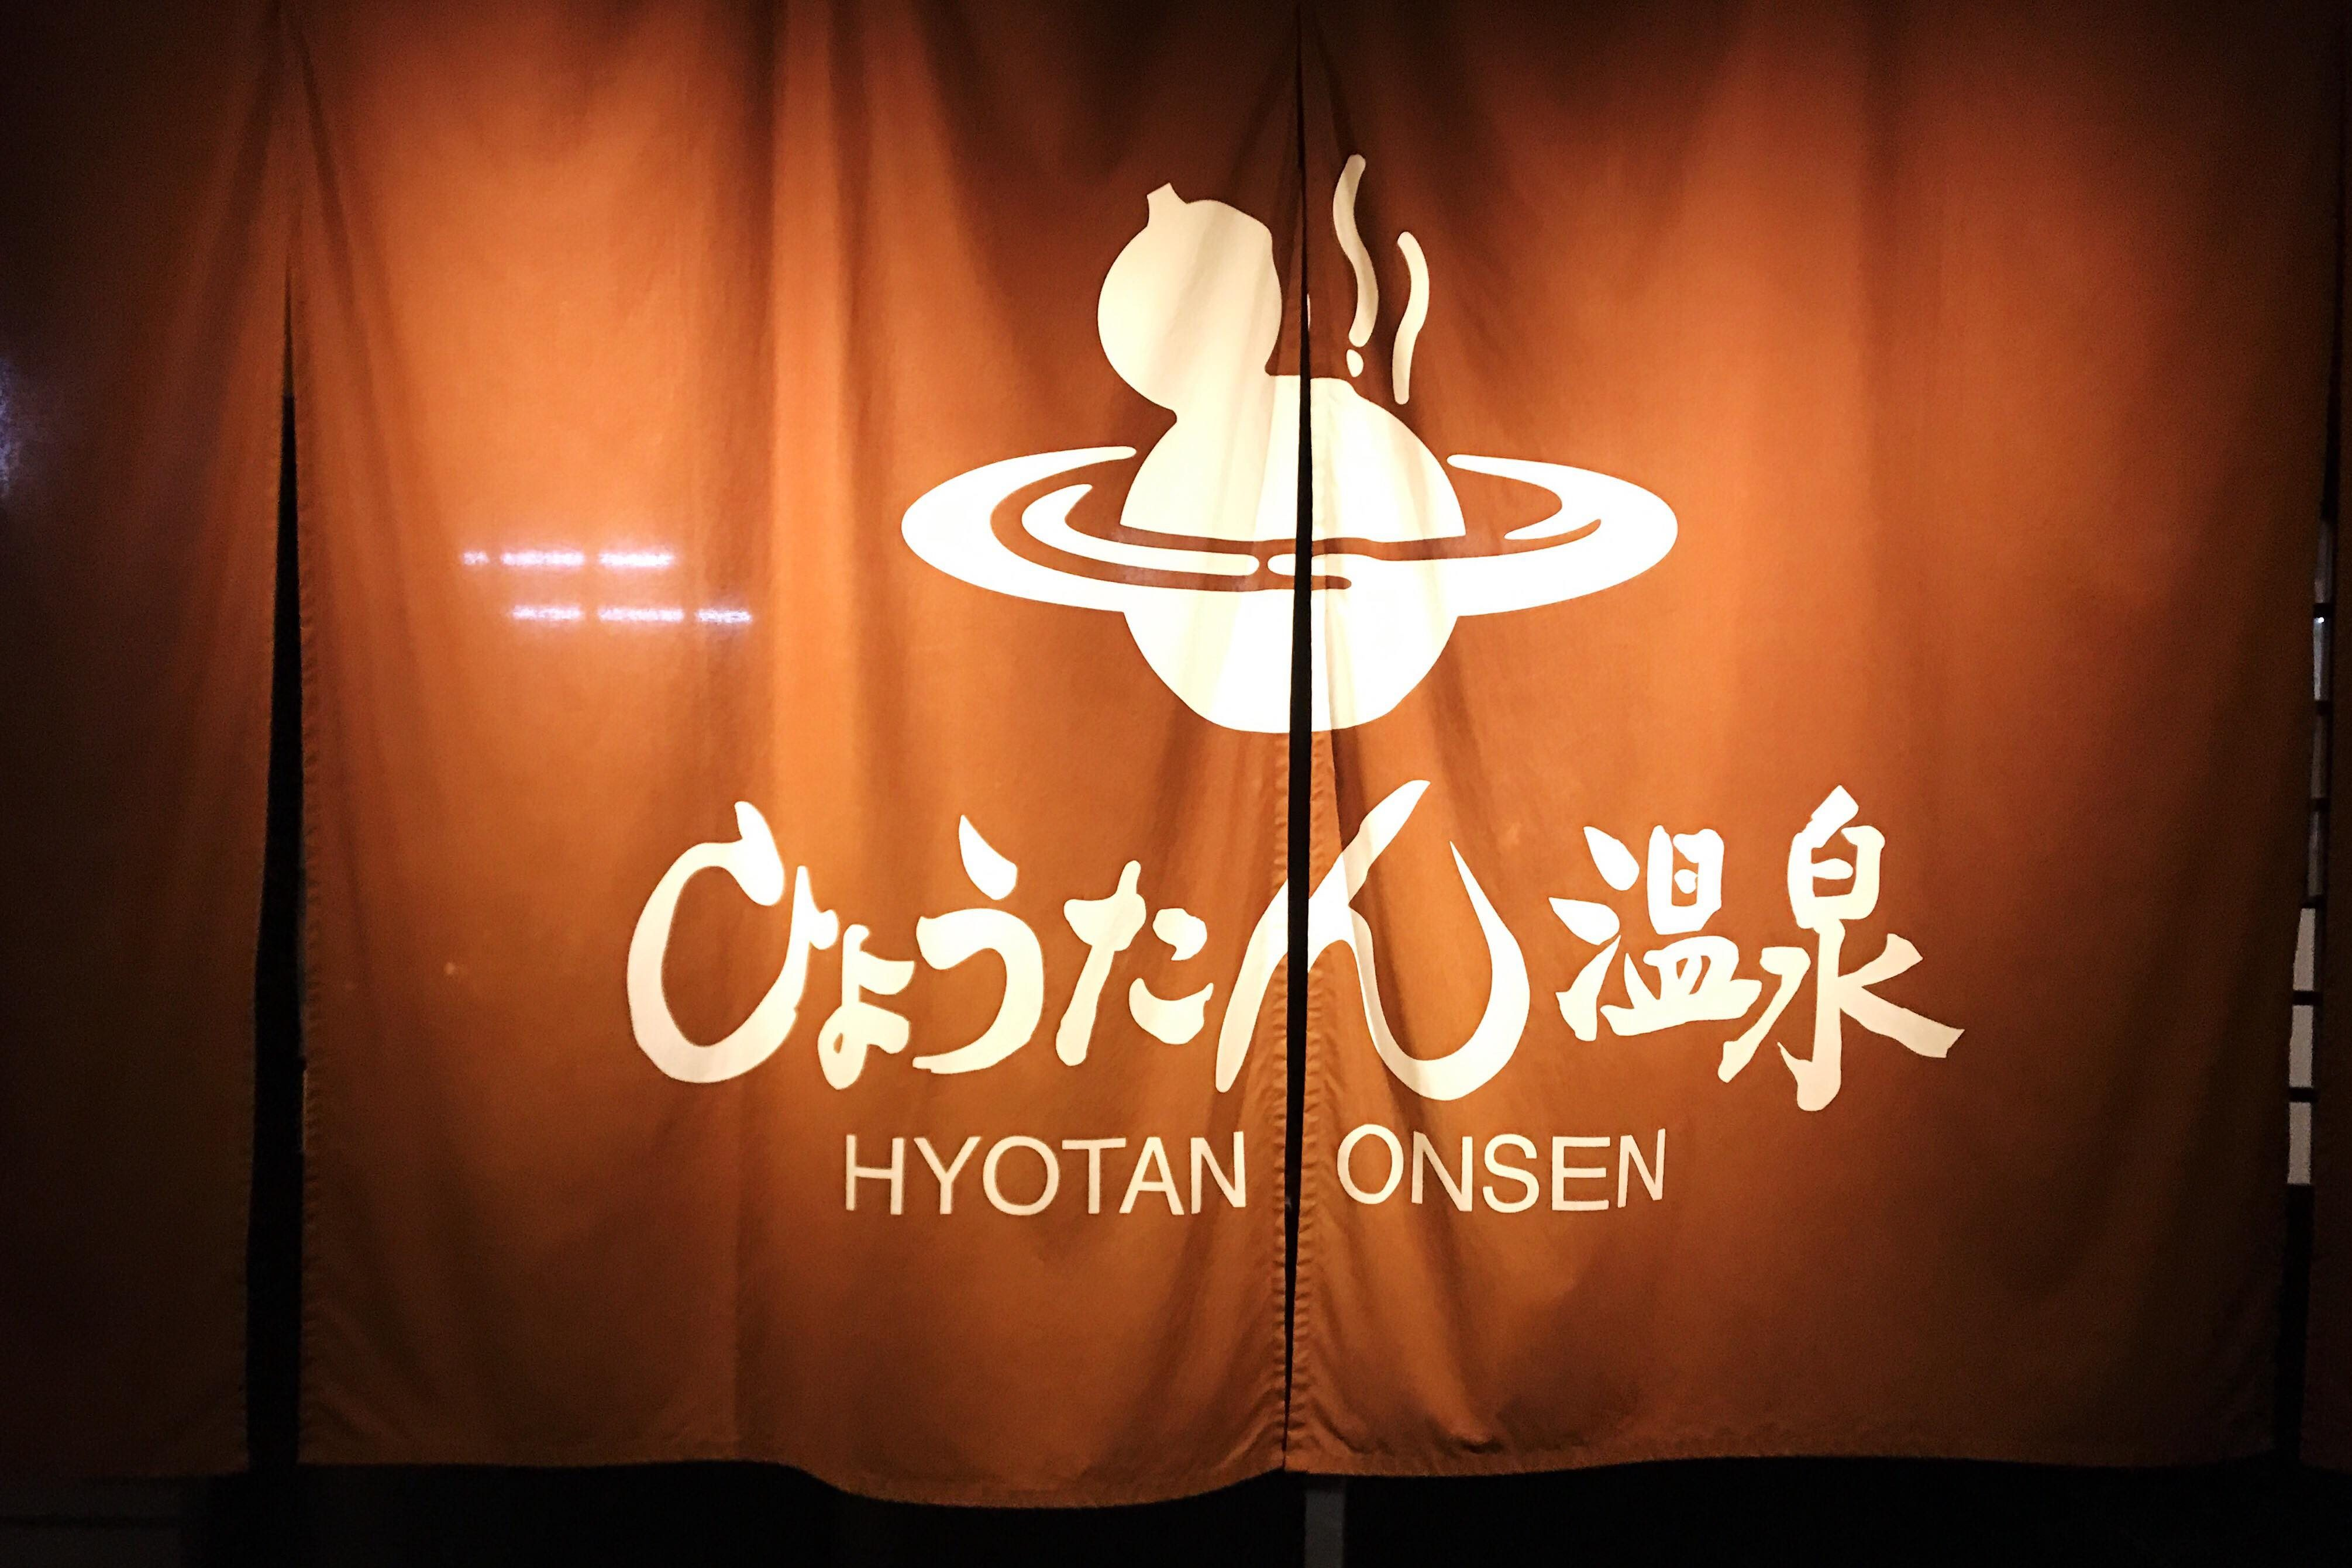 Bathing in Hyotan Onsen, Japan's only Michelin three-star onsen